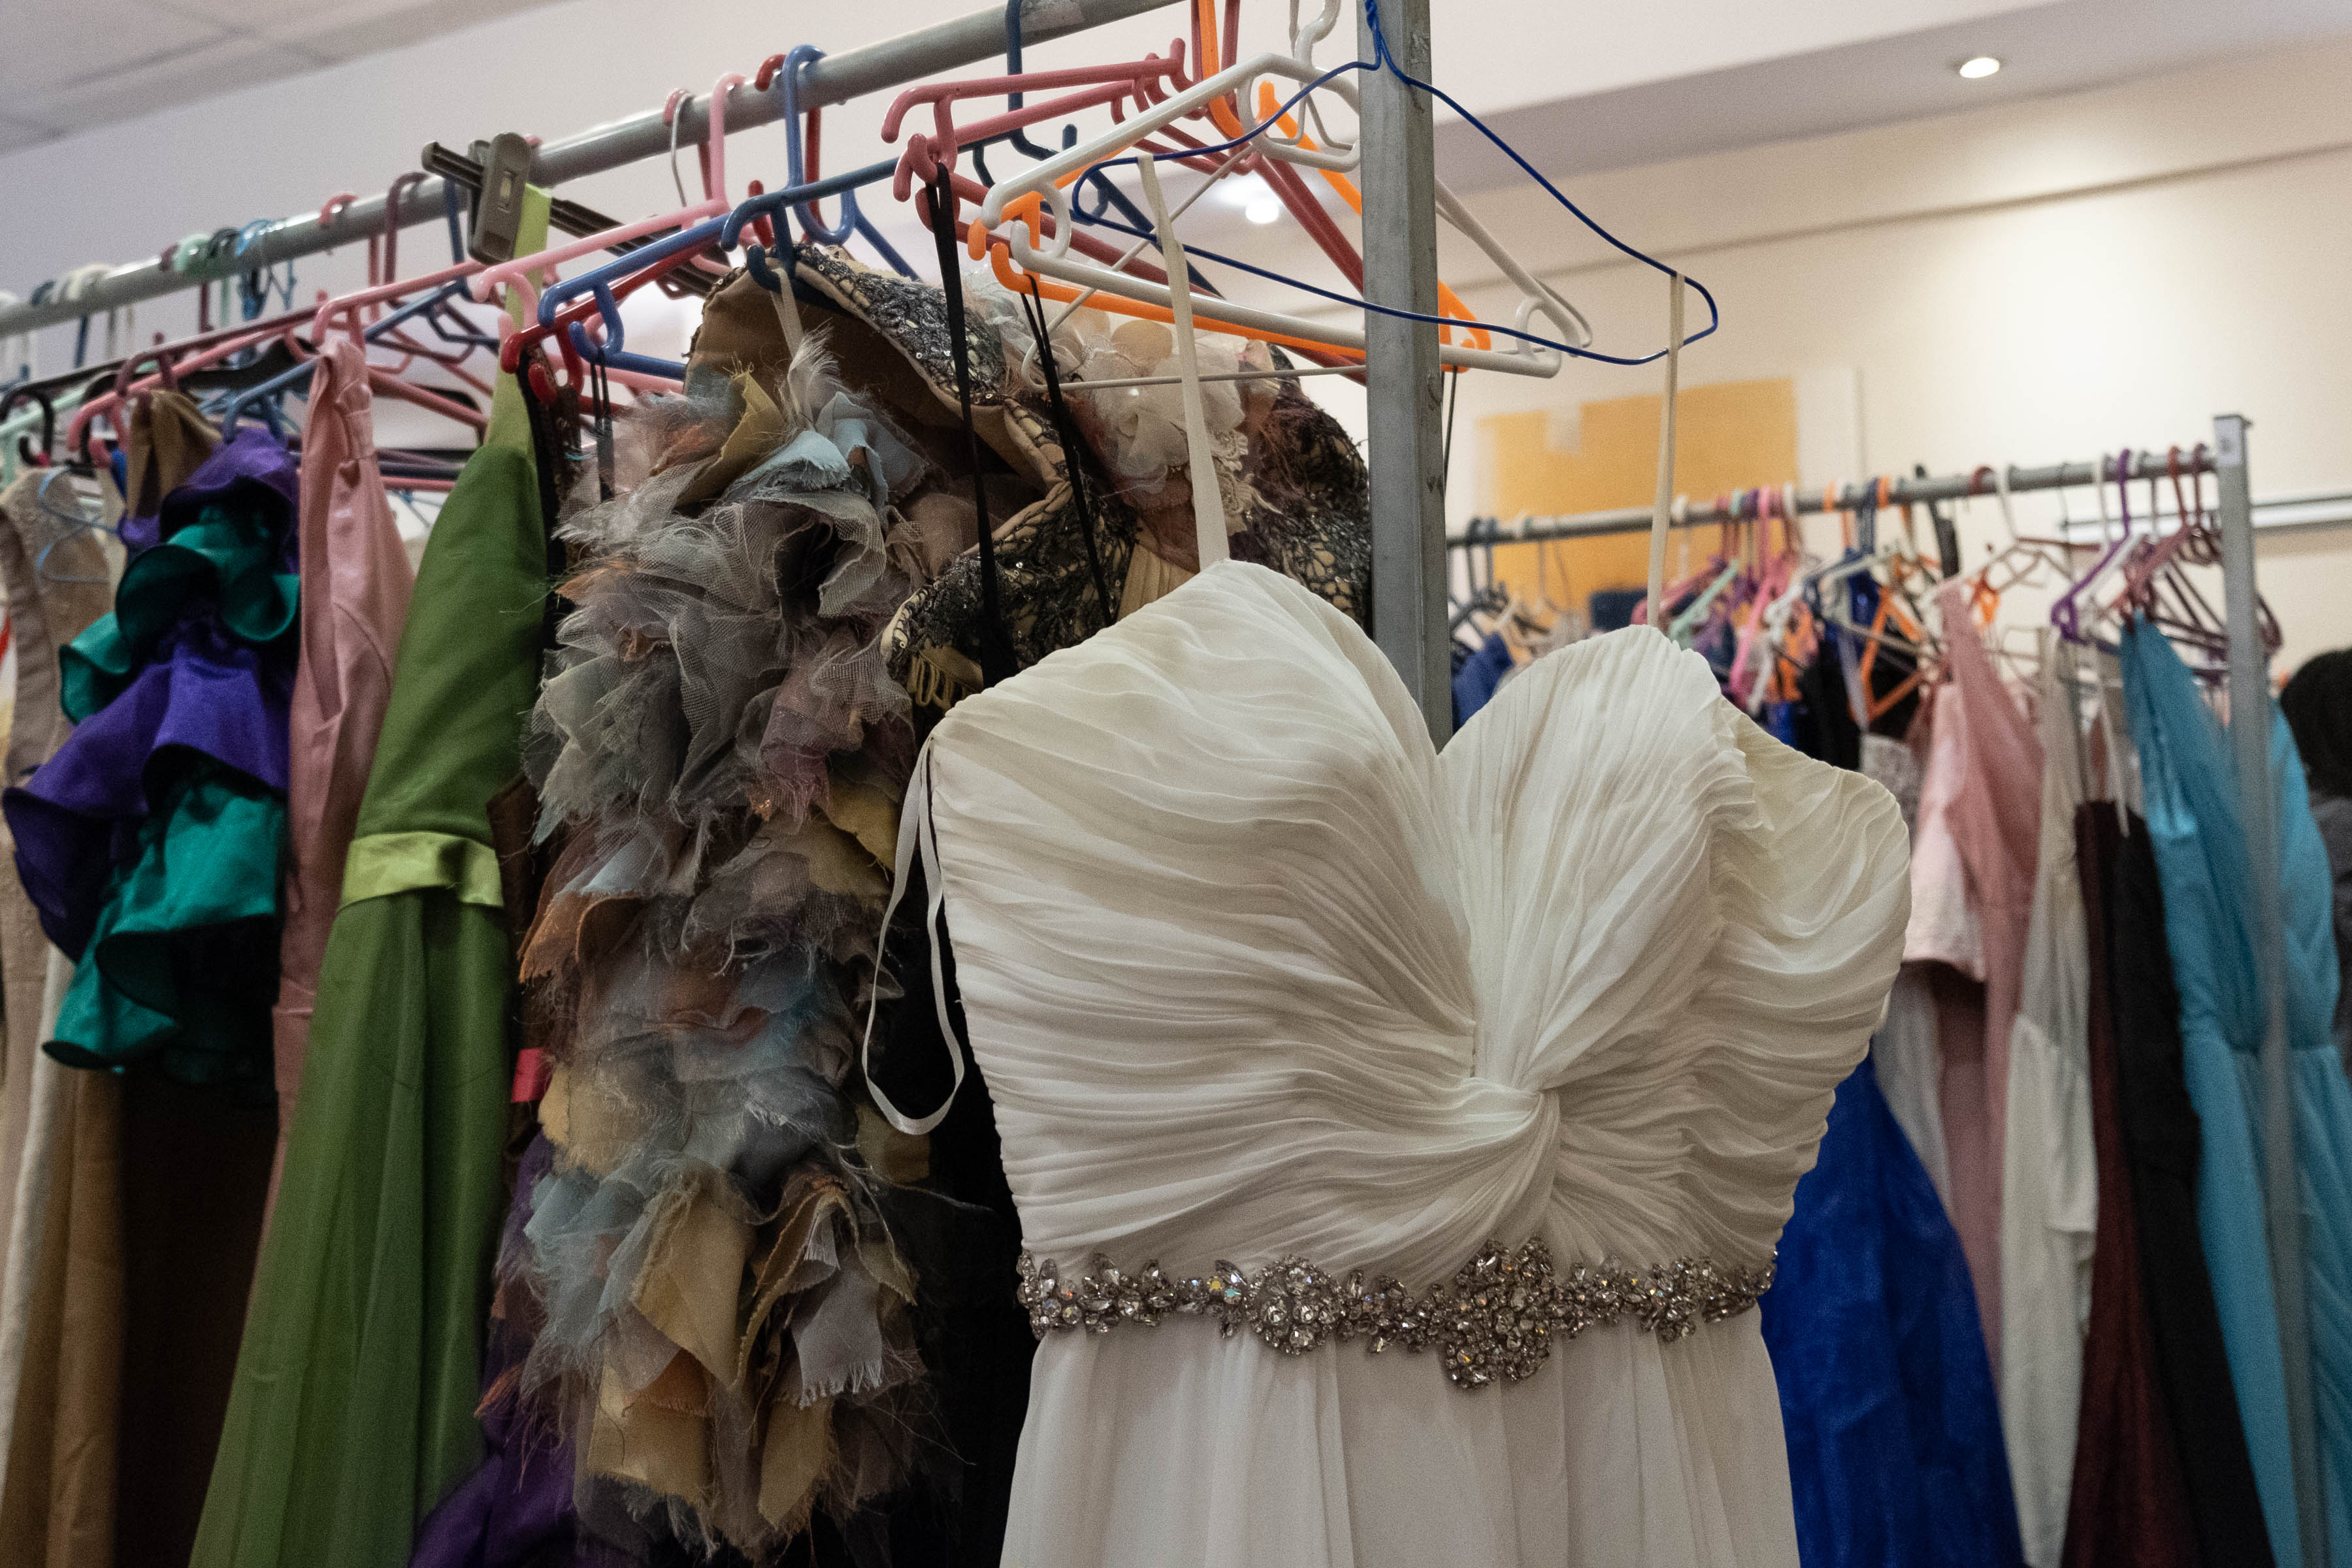 9 August 2019: For some learners, the fitting at The Cherry Blossom Project event is the first time they are trying on any kind of formal wear.